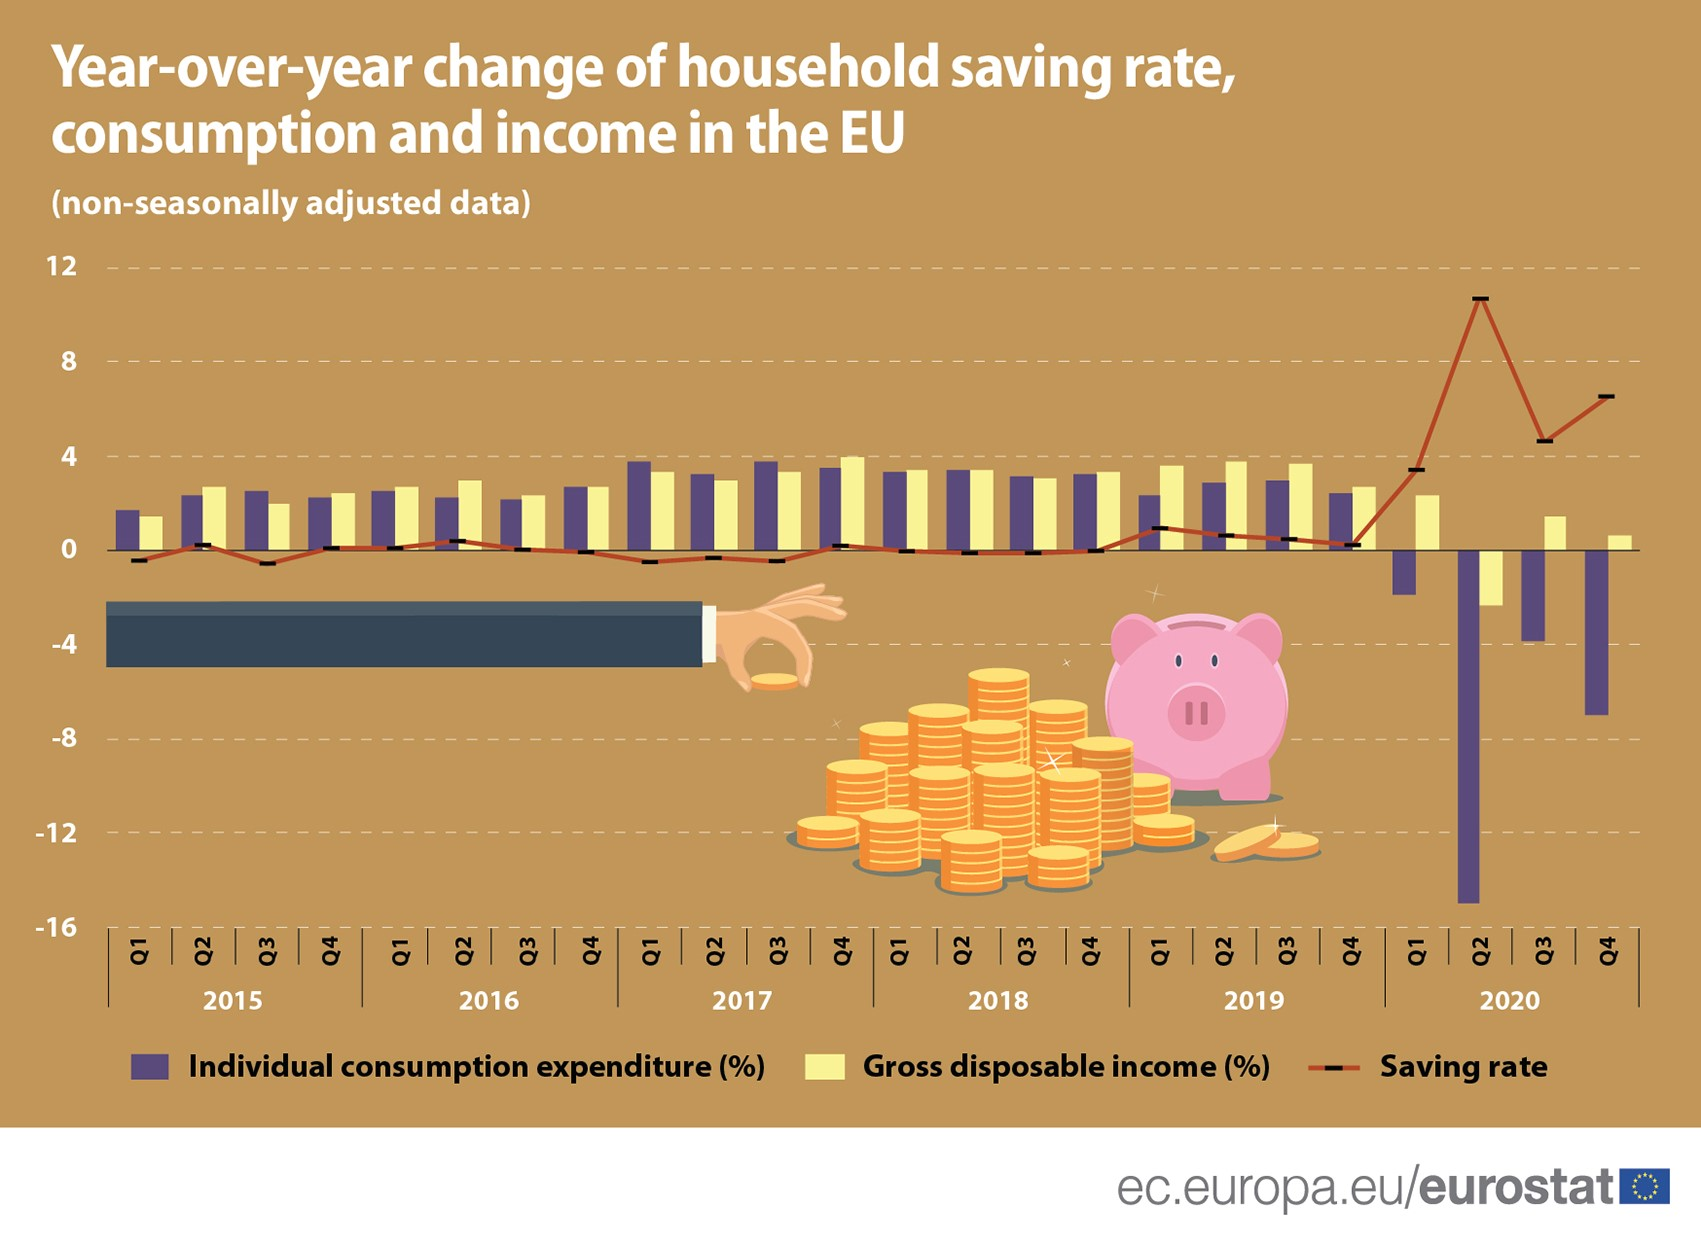 YoY change of household saving rate, consumption and income